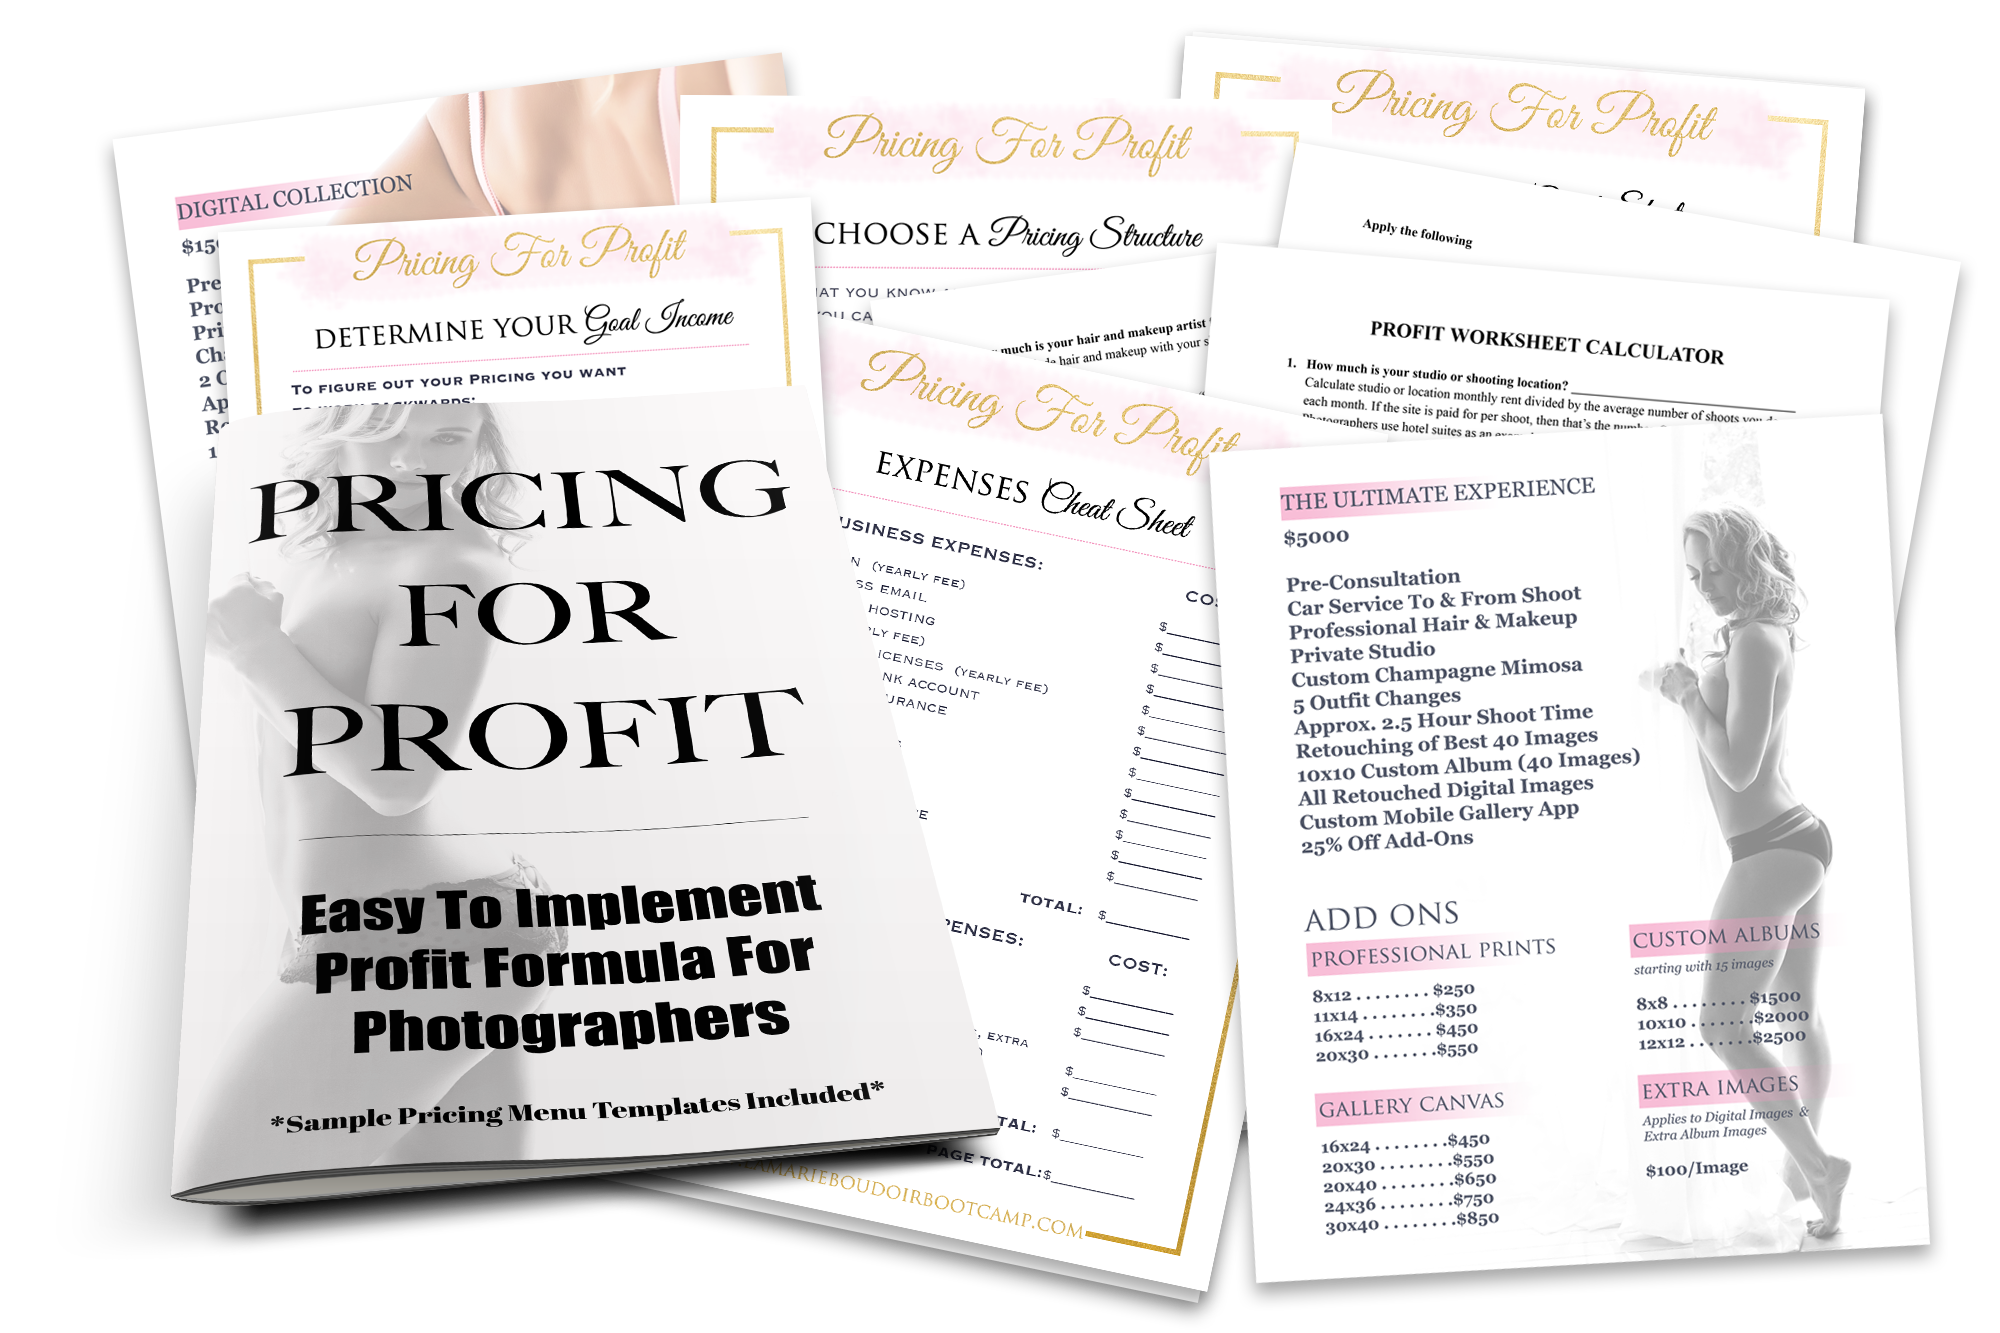 How To Price Your Photography For Profit Use The